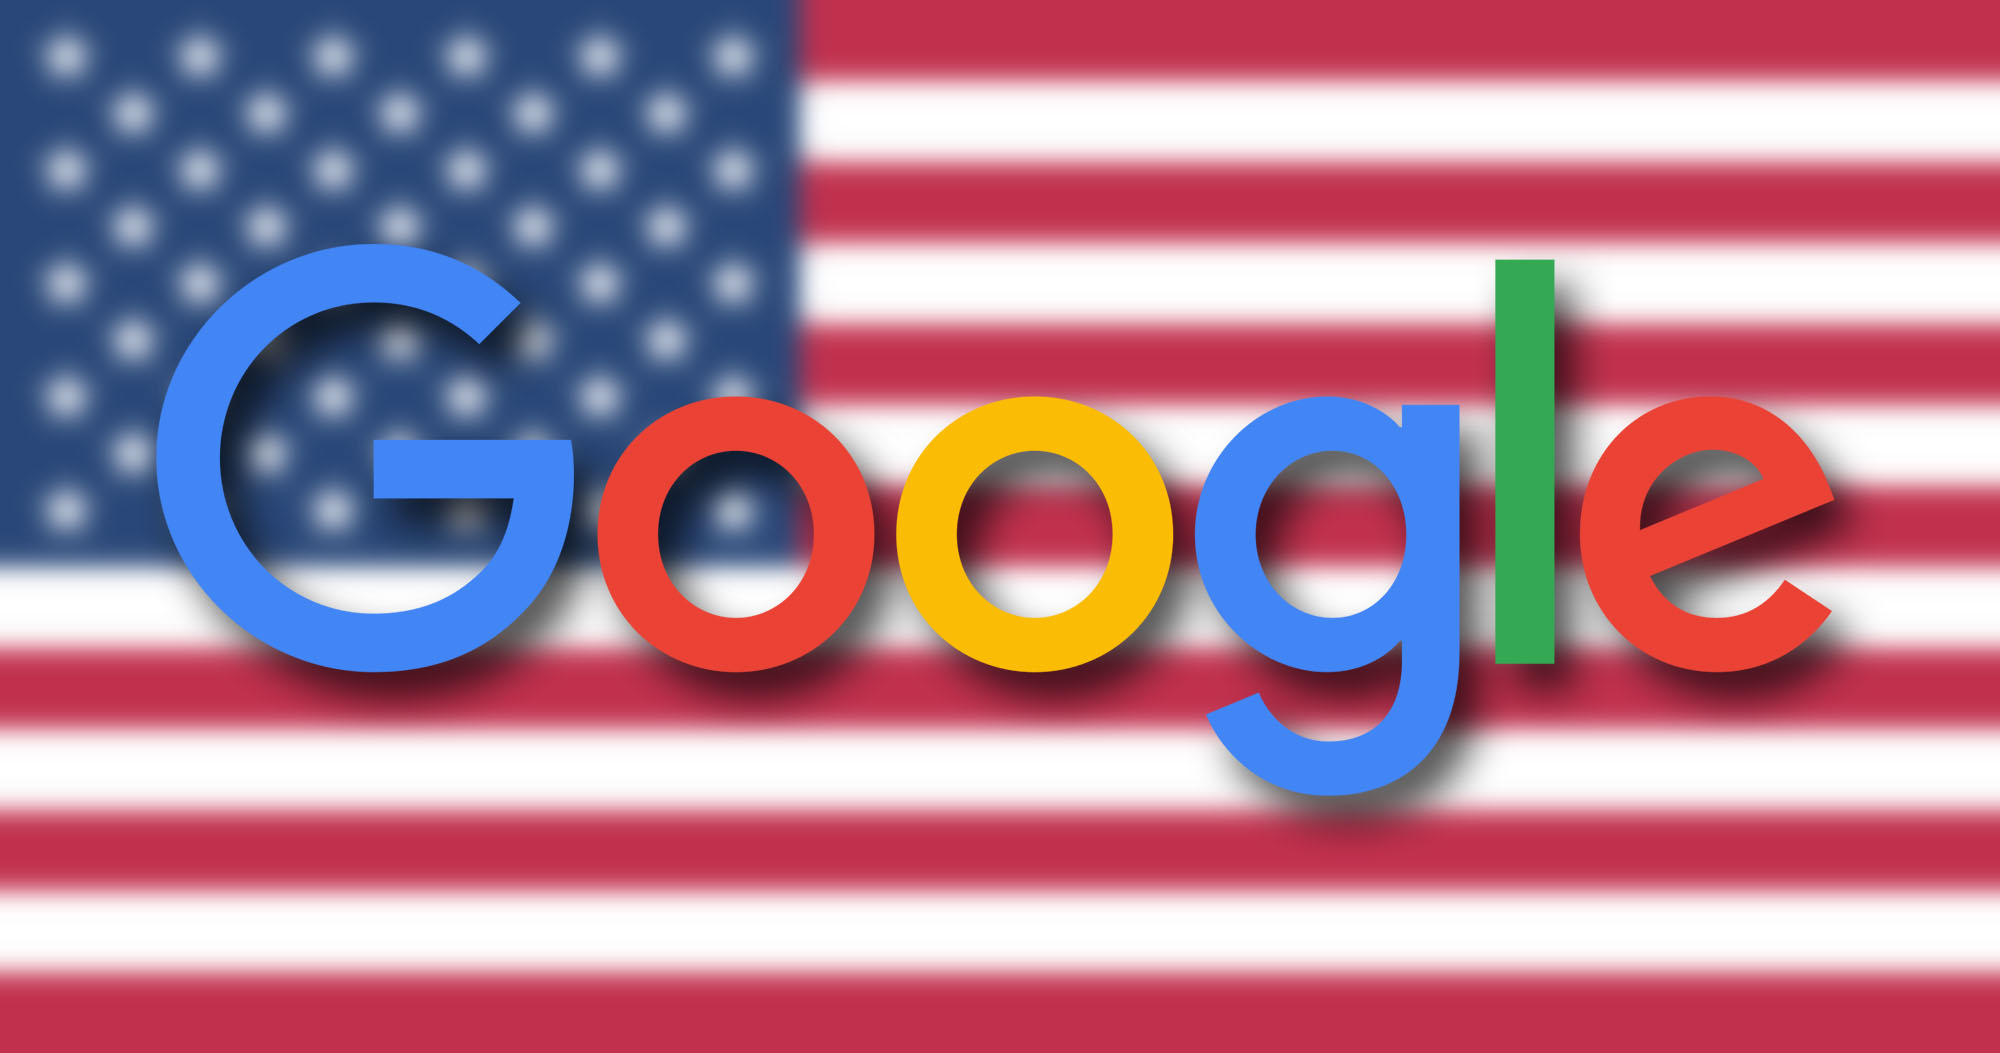 Google will help you register to vote directly from search